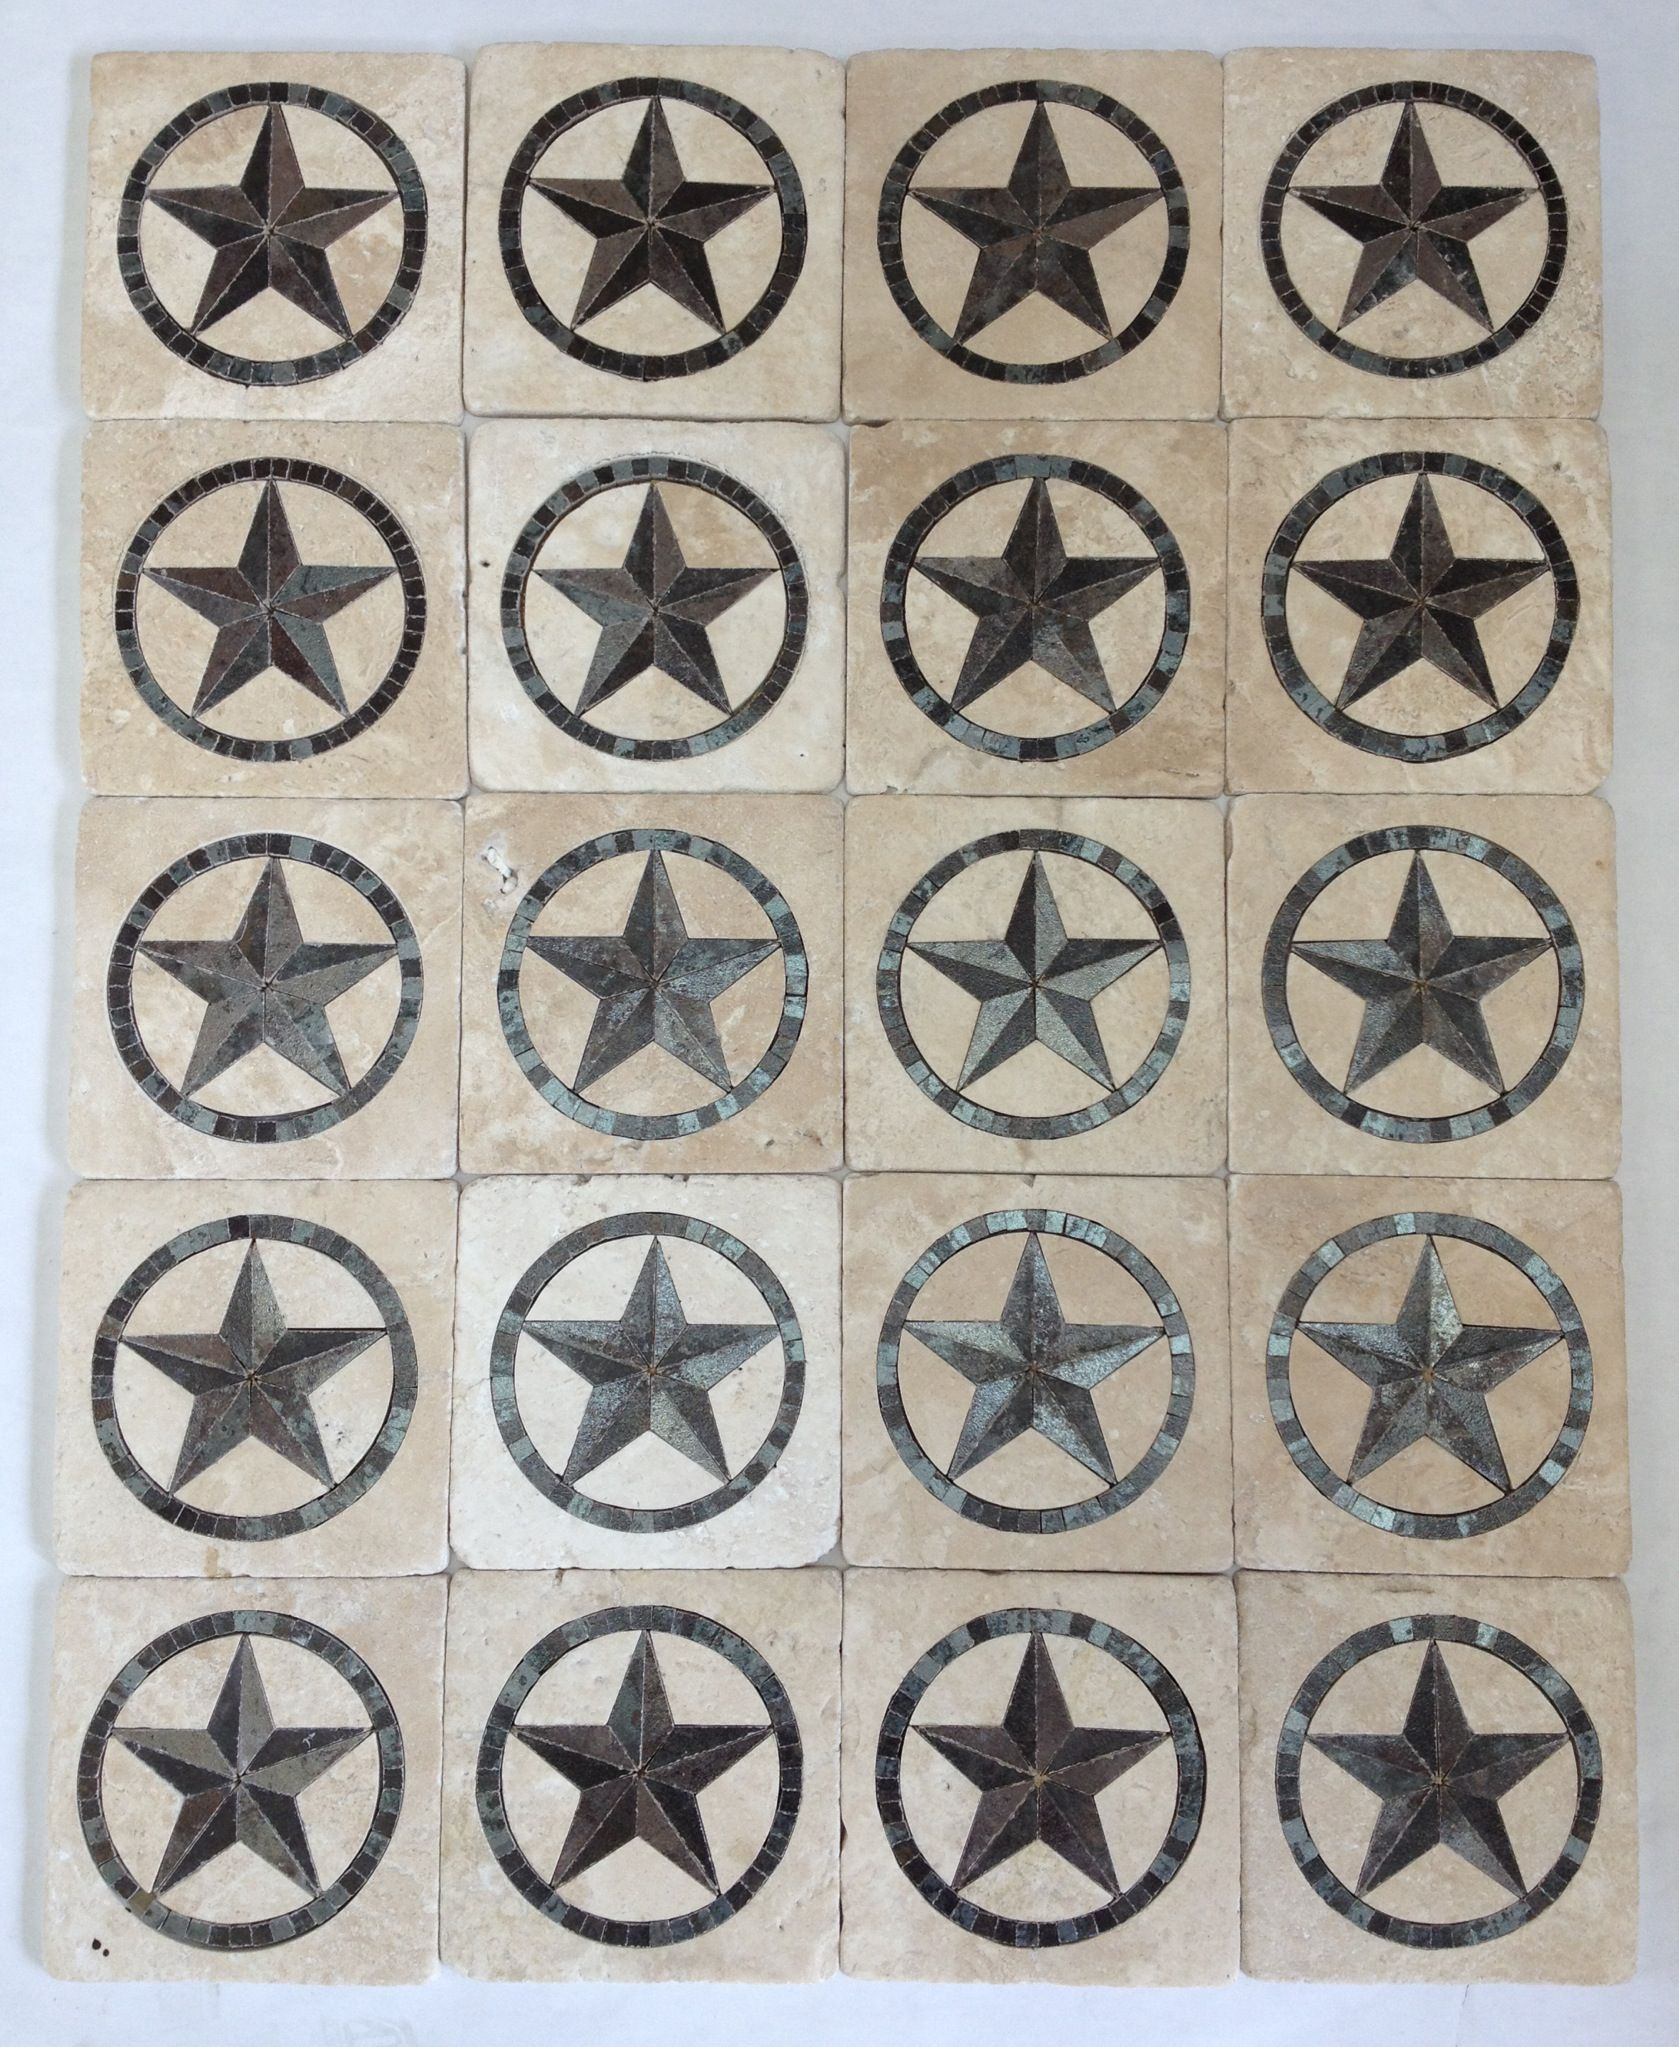 6x6 tumbled travertine with texas star inserts for backsplash in